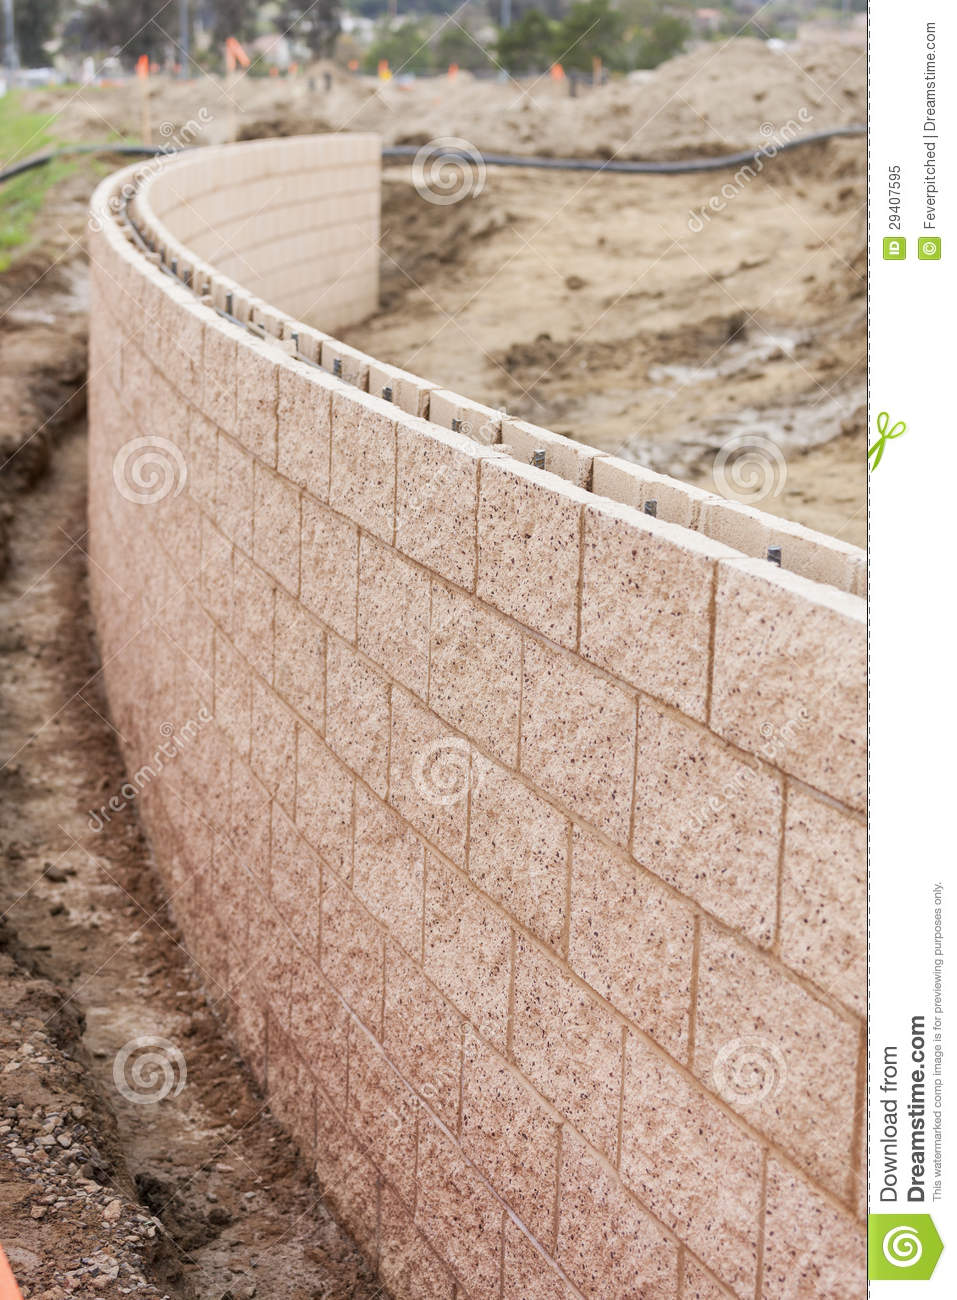 New Outdoor Retaining Wall Being Built Royalty Free Stock